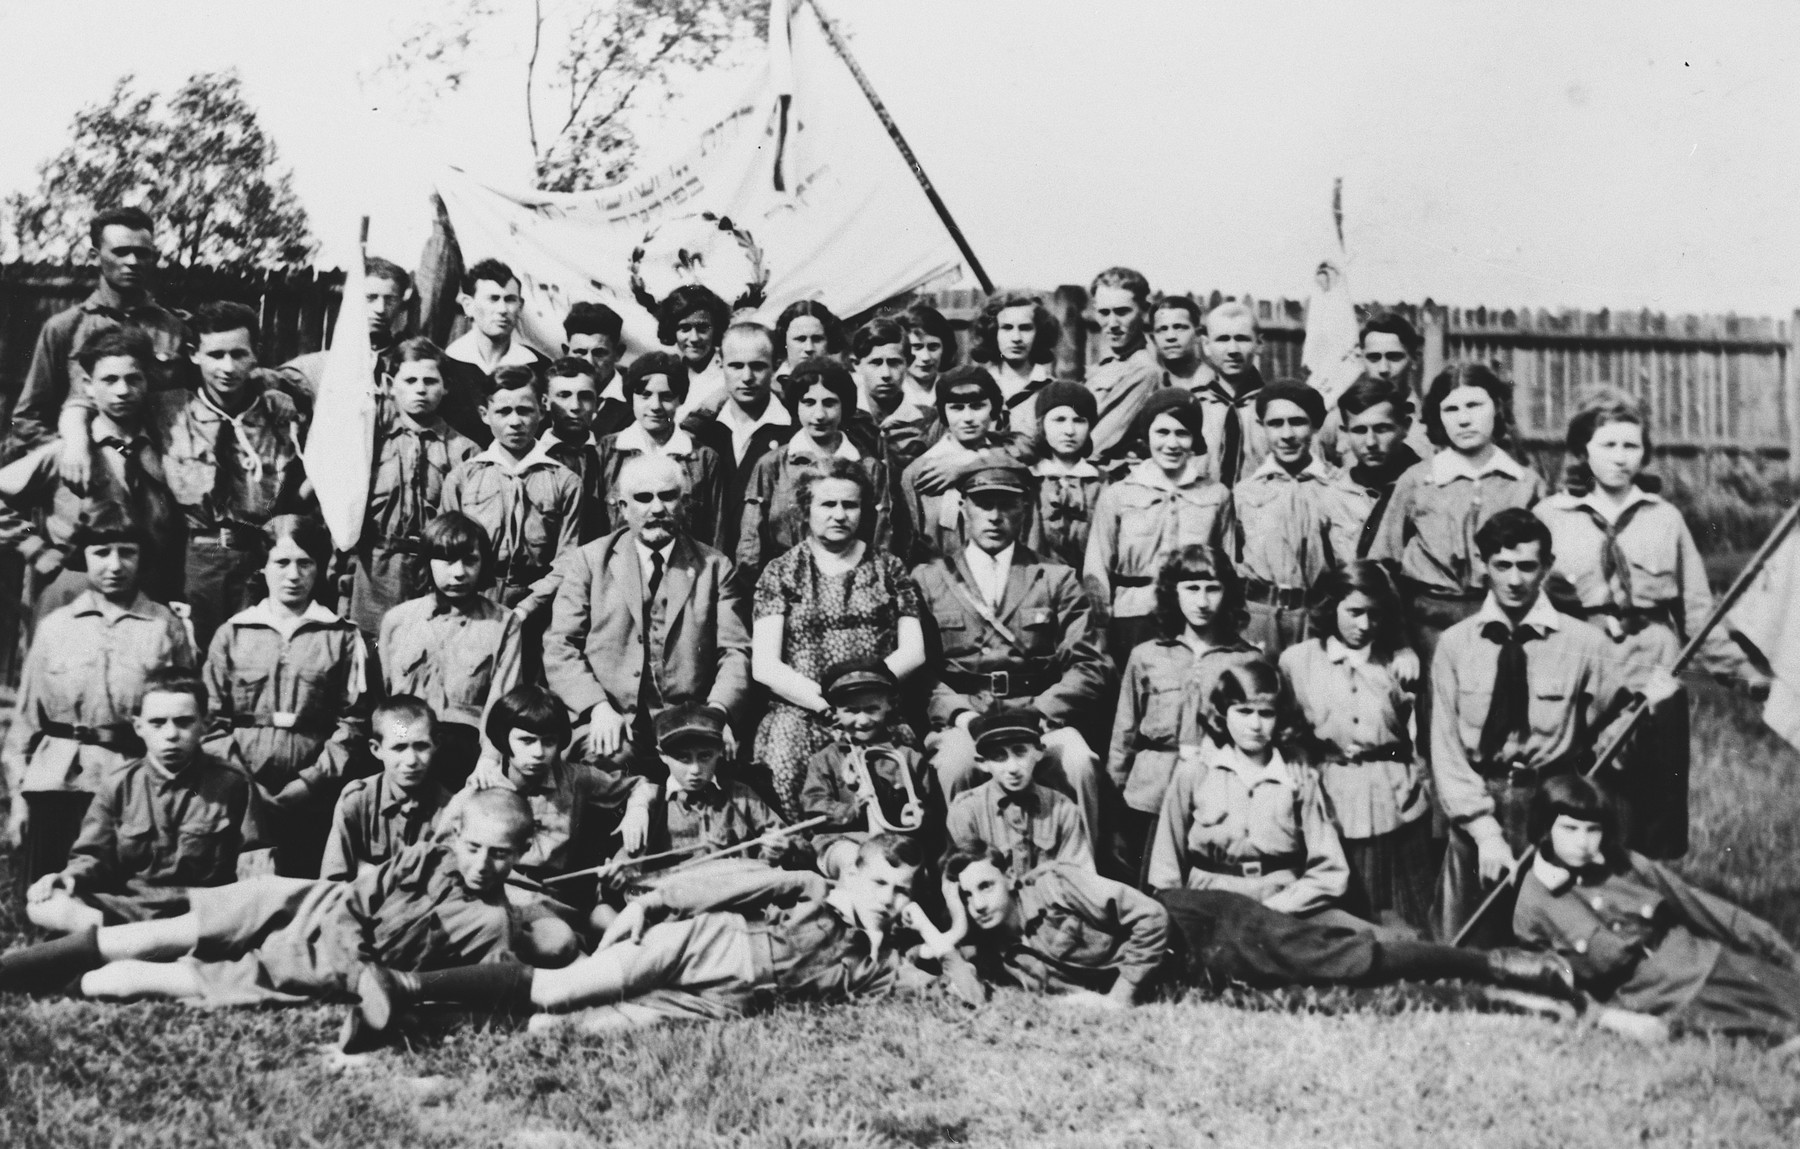 Children in a Zionist youth movement in Dabrowa Gornicza pose with flags and bugles.